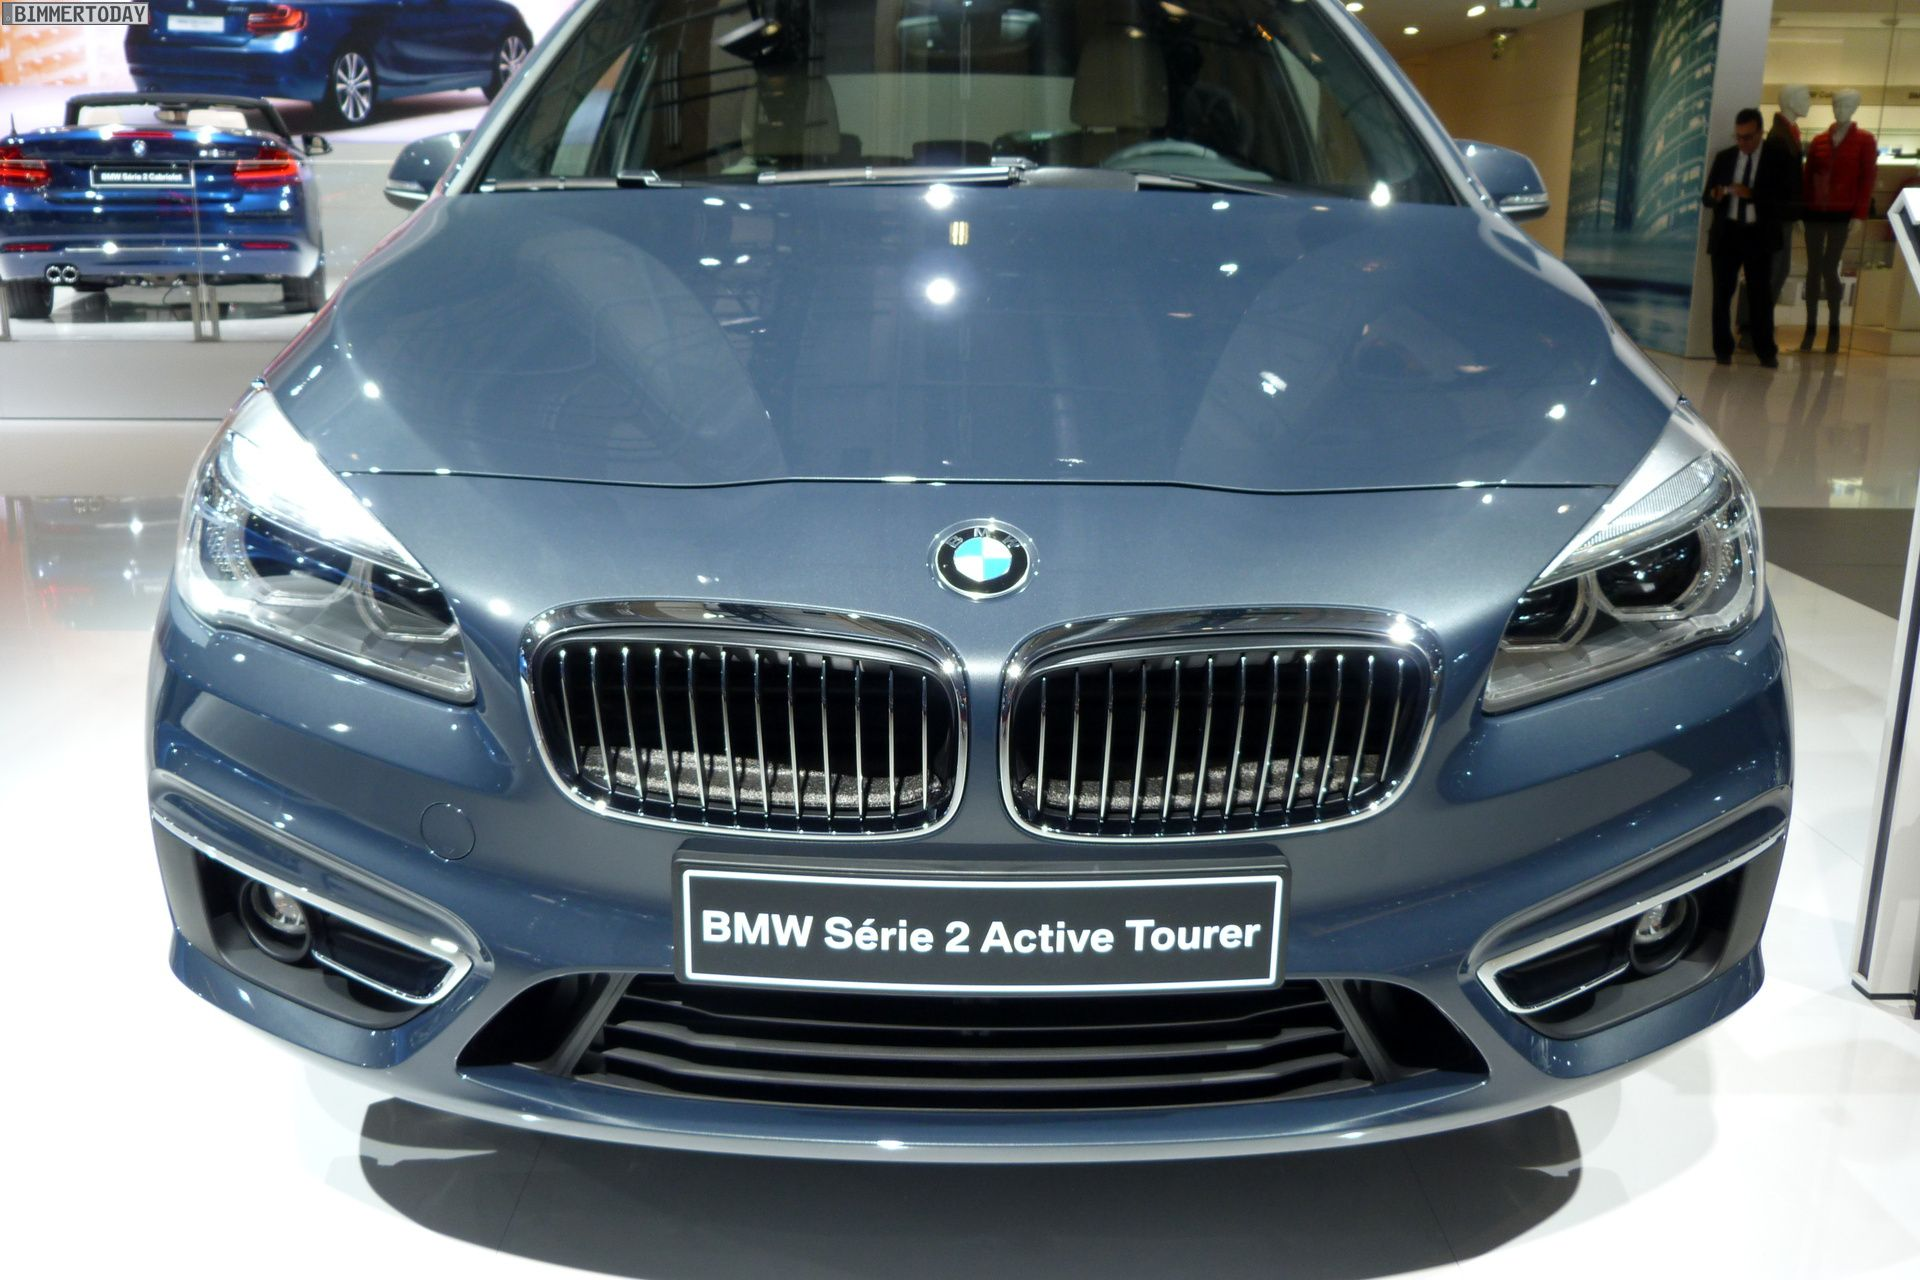 2014 bmw 2er active tourer f45 220d xdrive atlantikgrau paris autosalon live 16 bmw. Black Bedroom Furniture Sets. Home Design Ideas